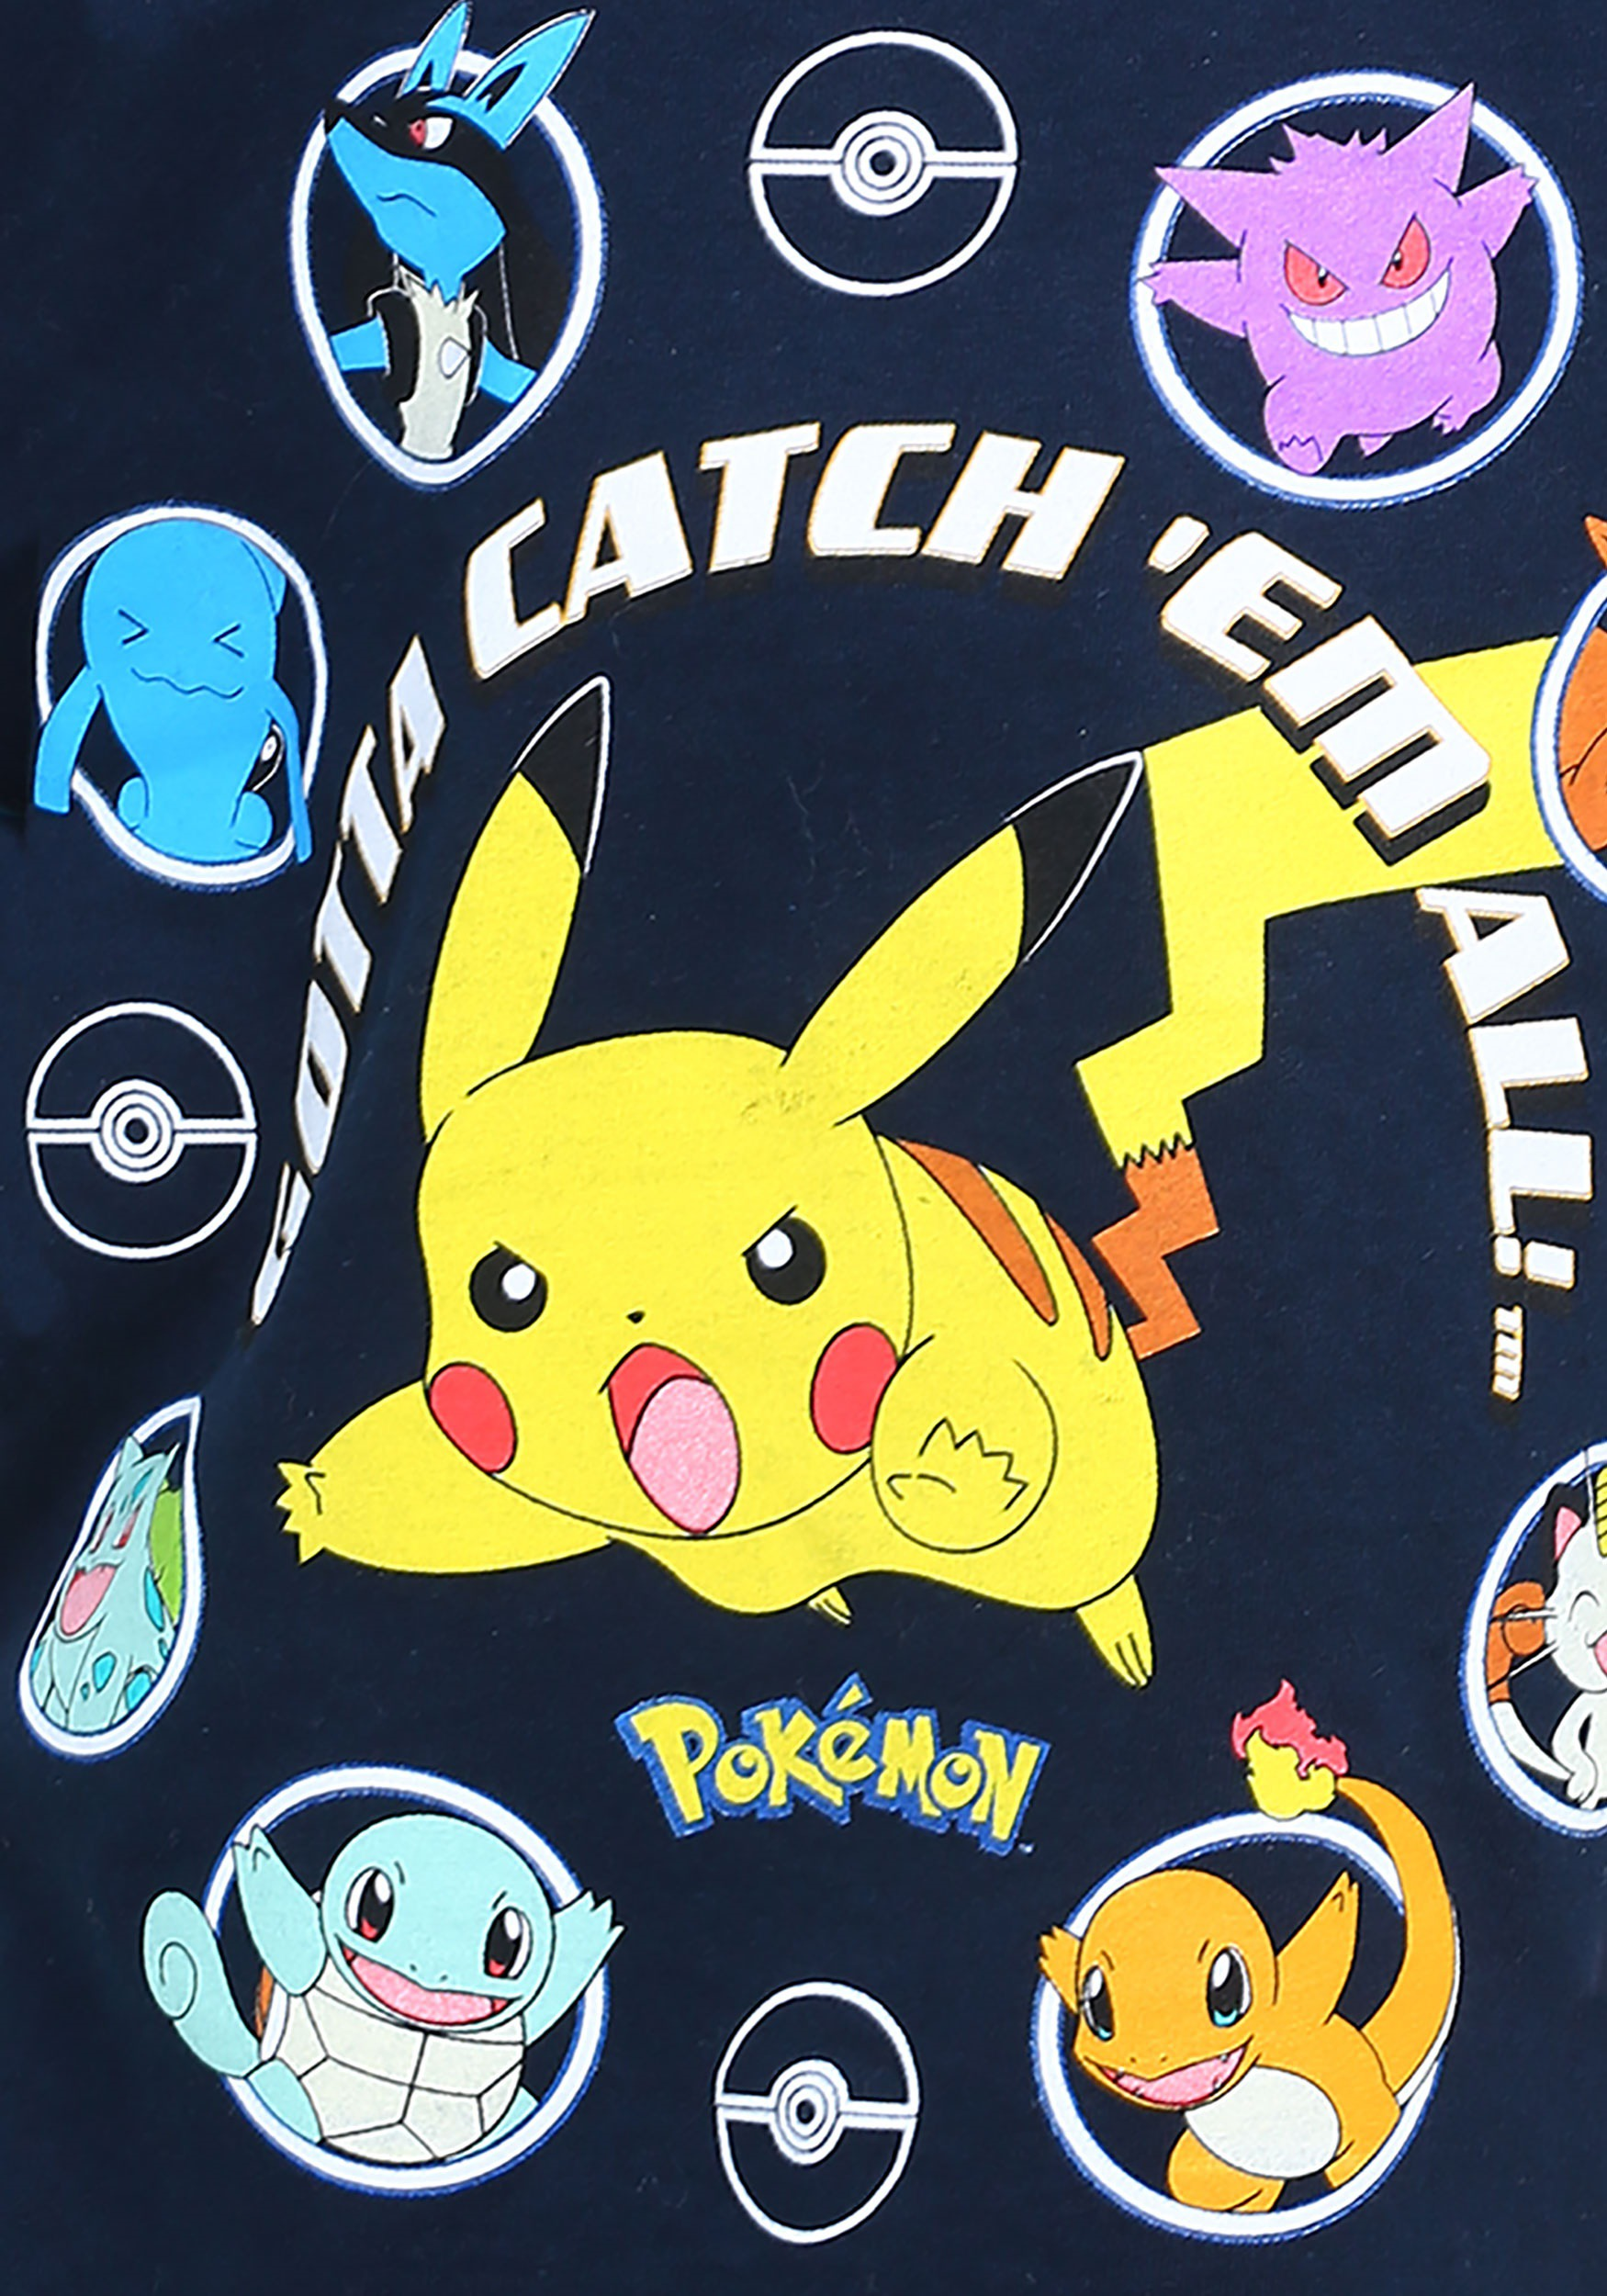 Pokemon Catch Them All Images